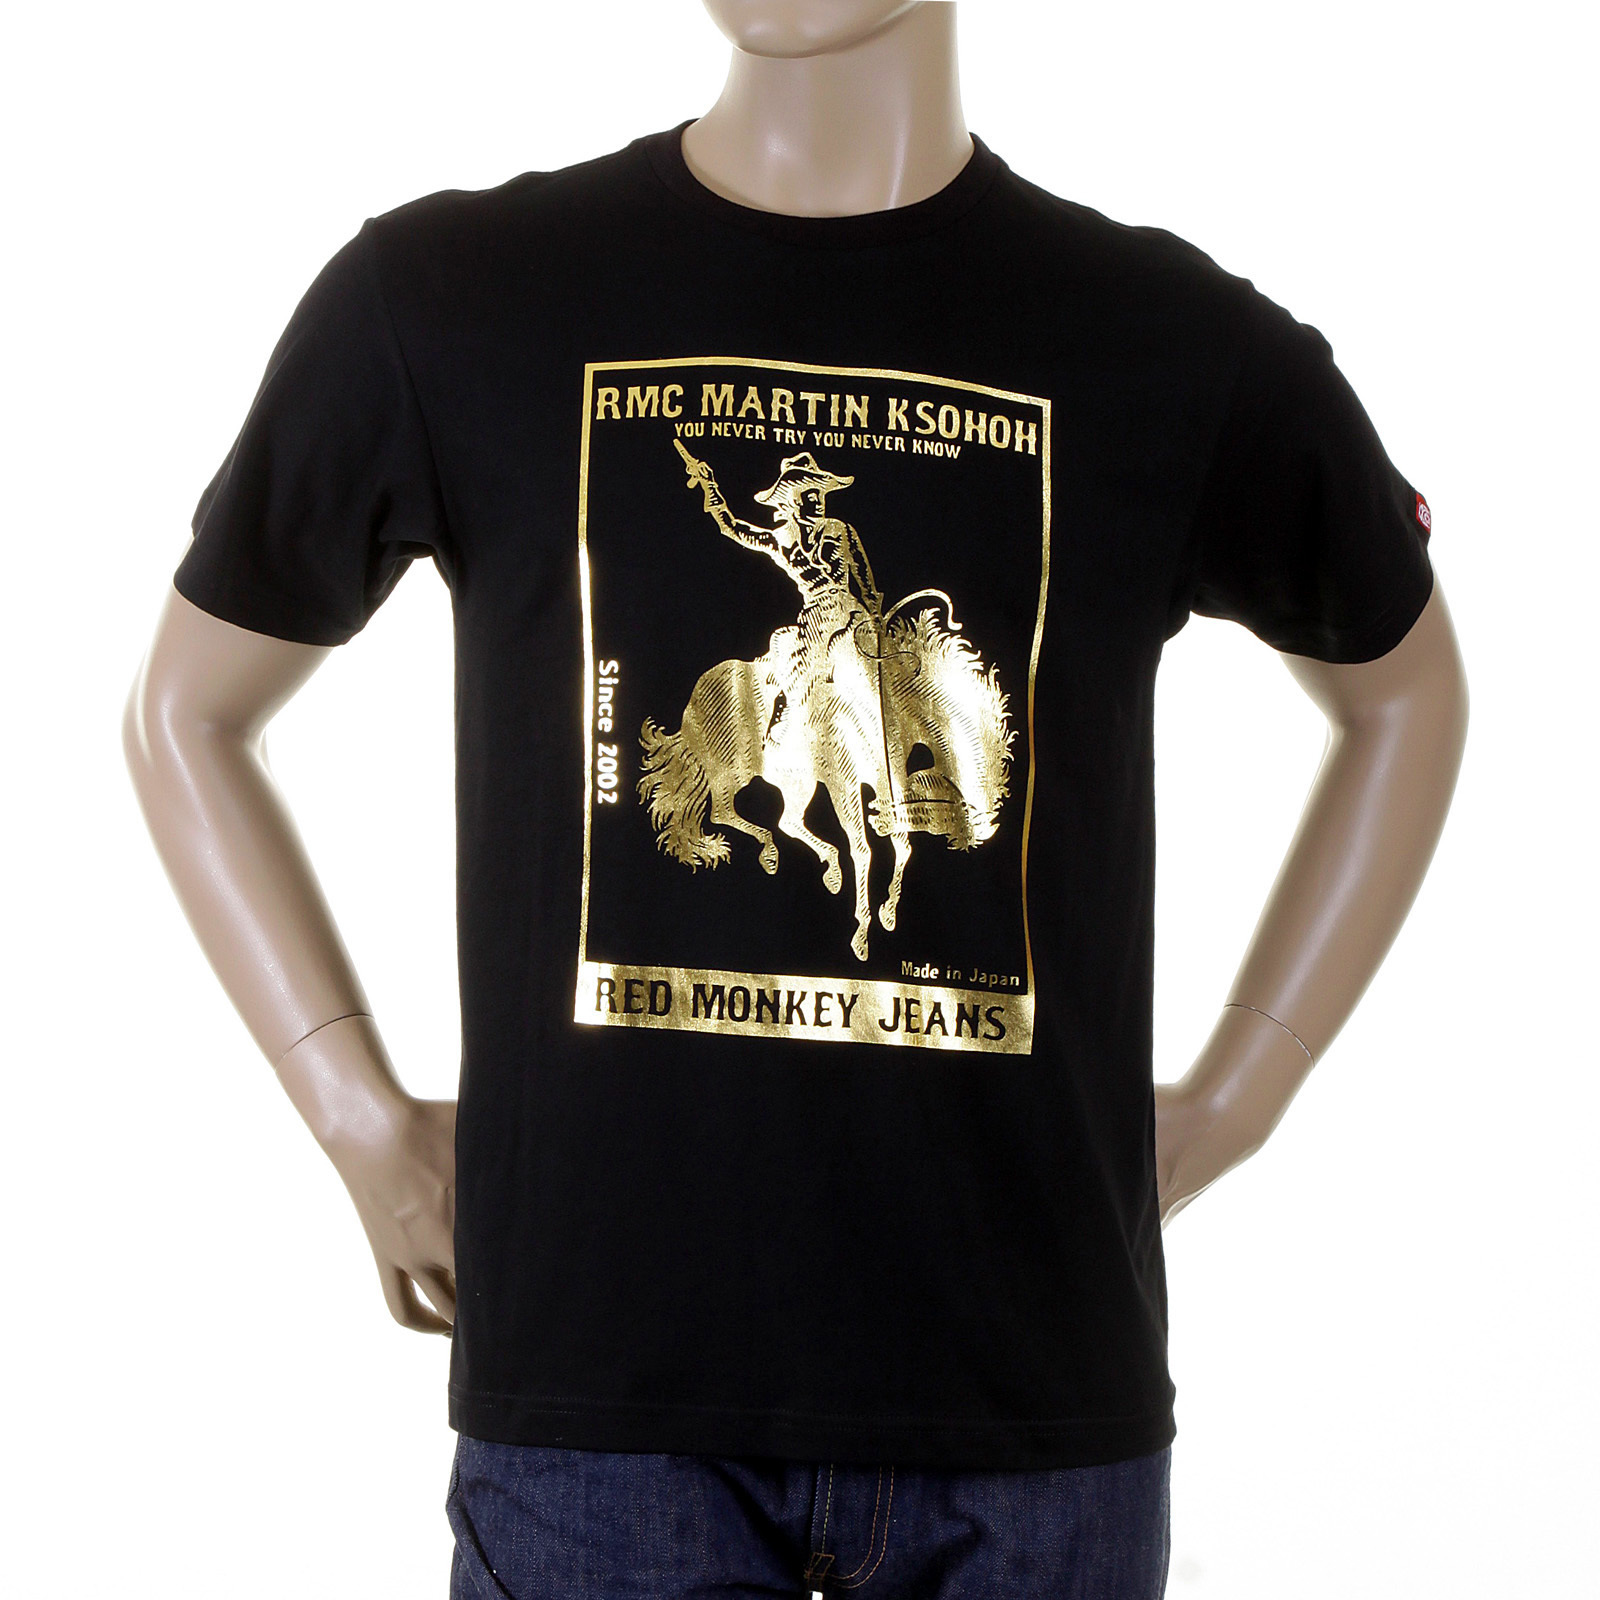 Rmc Jeans Crewneck Regular Fit Gold Foil Cowboy Rodeo Printed Short Sleeved Black T Shirt Redm2089